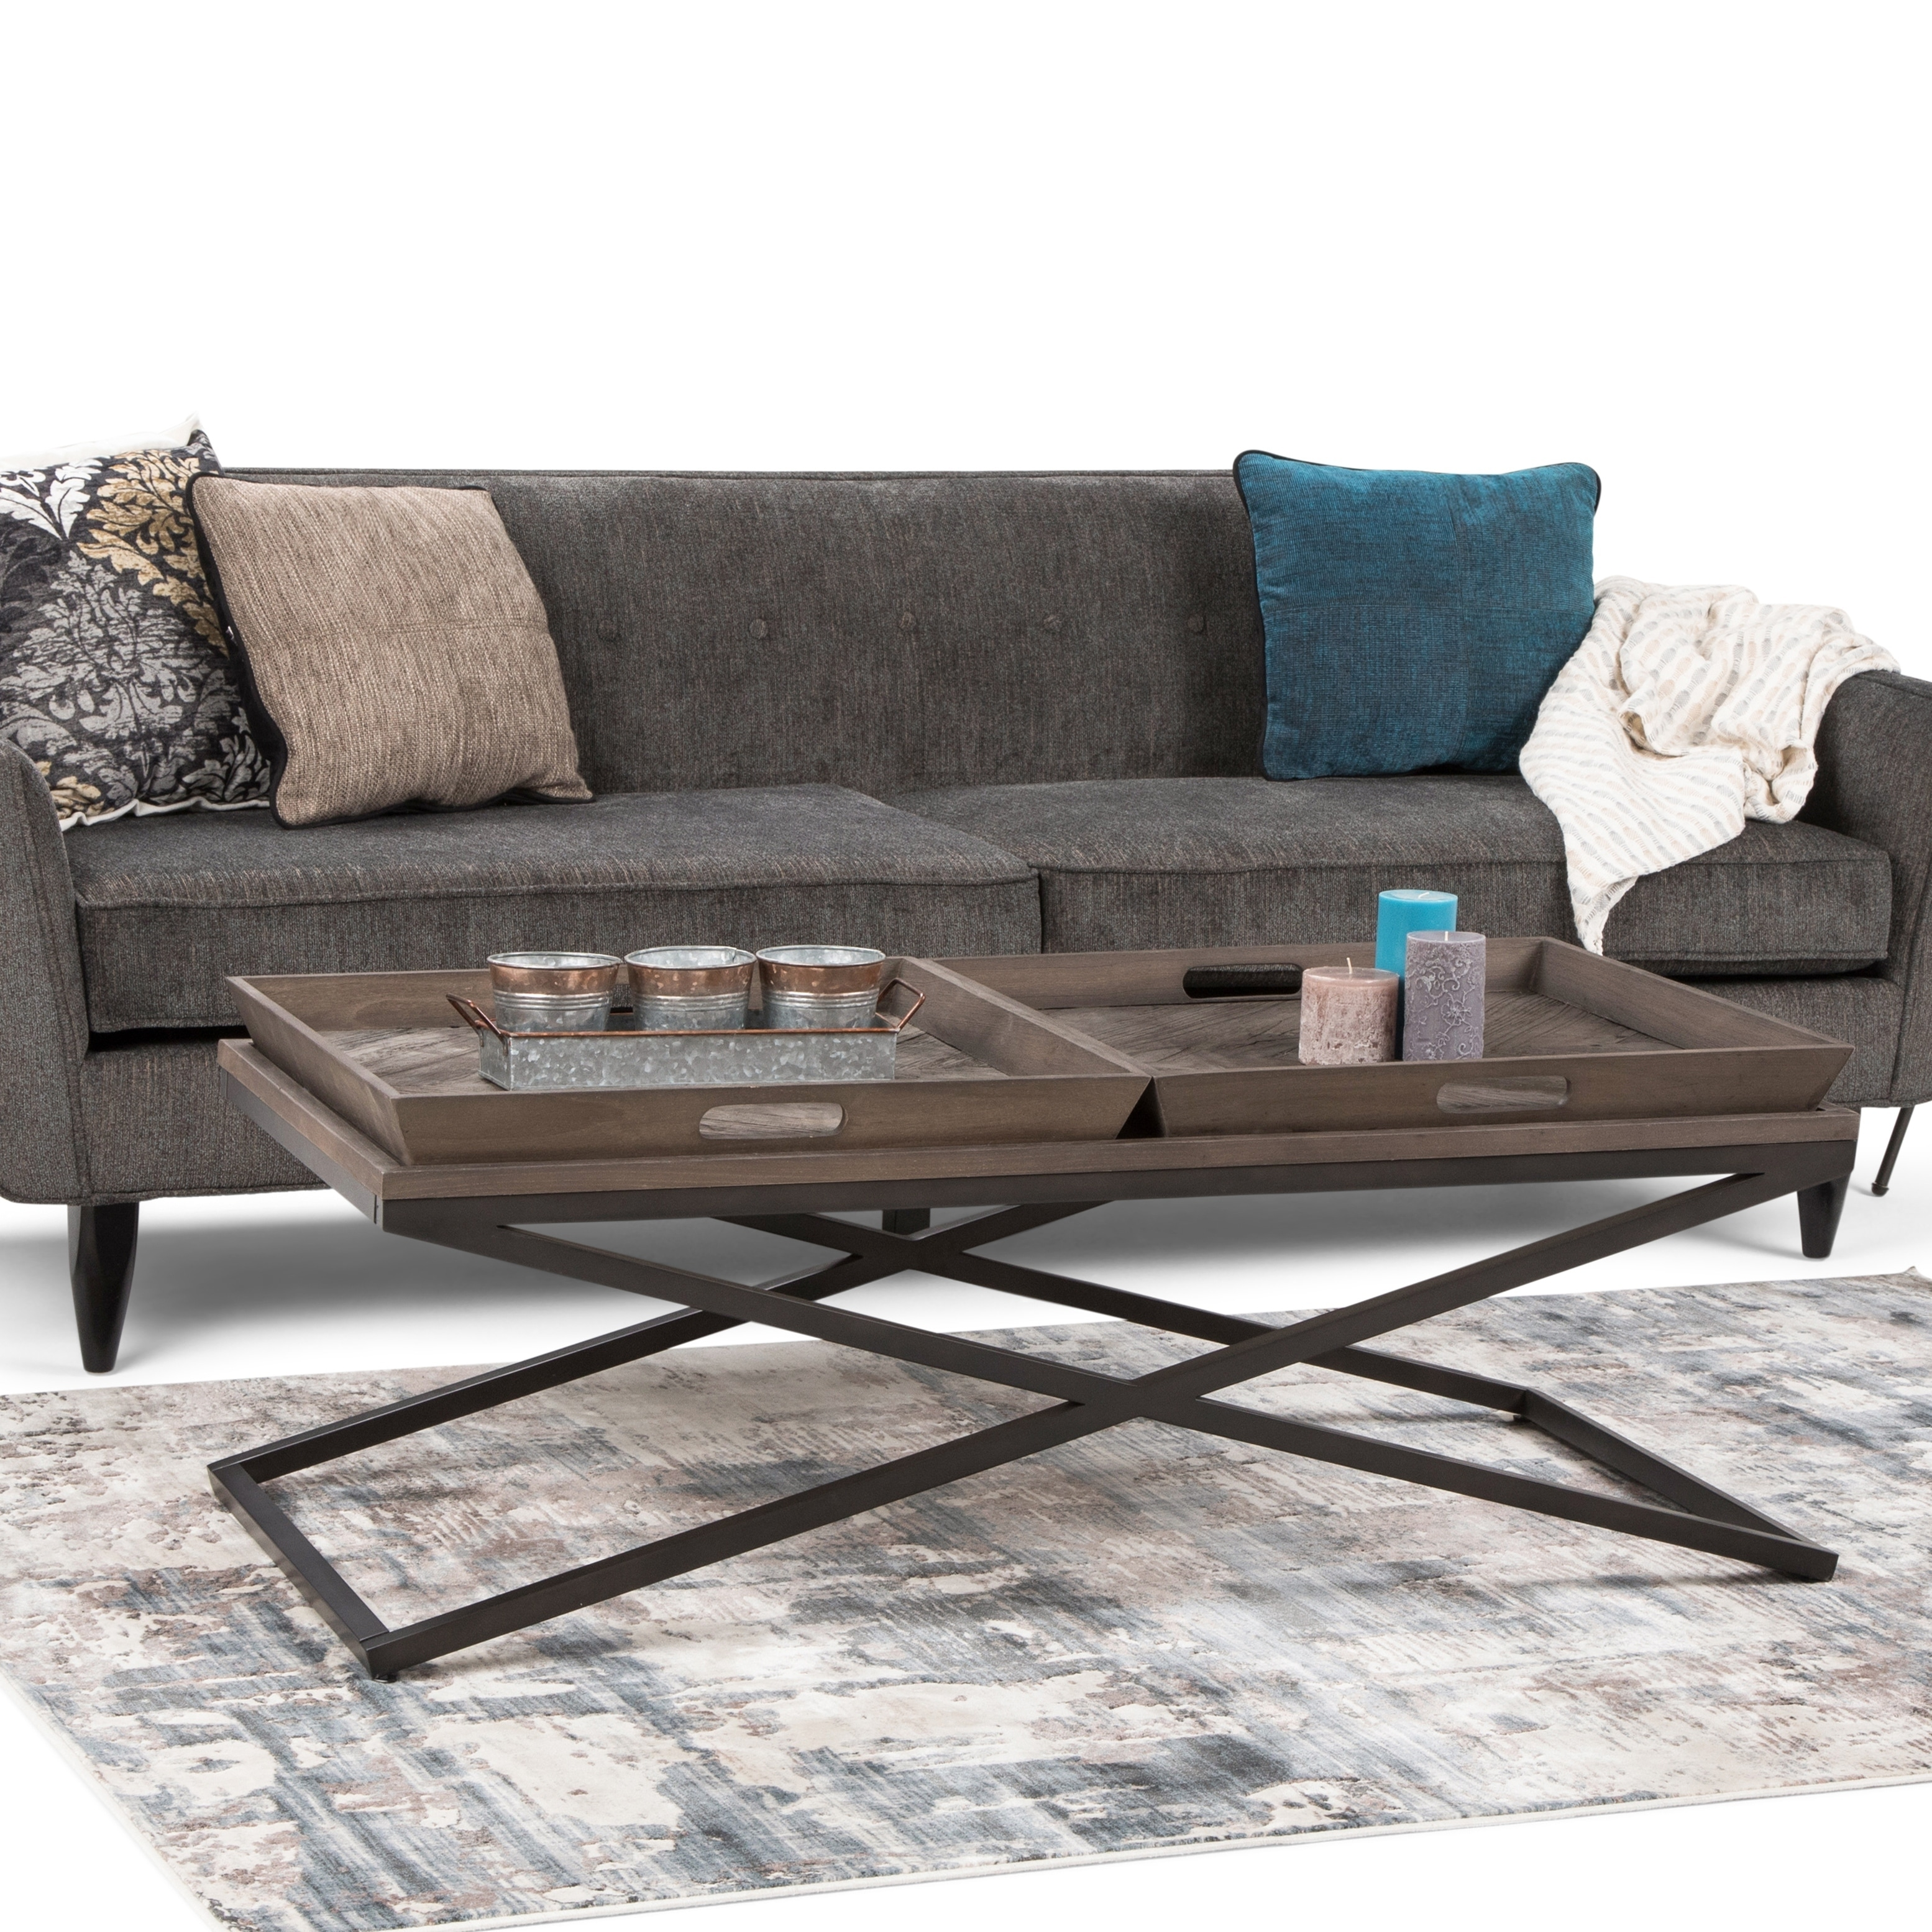 wyndenhall poulton solid aged elm wood and metal 50 inch wide rectangle modern industrial coffee table in distressed natural elm